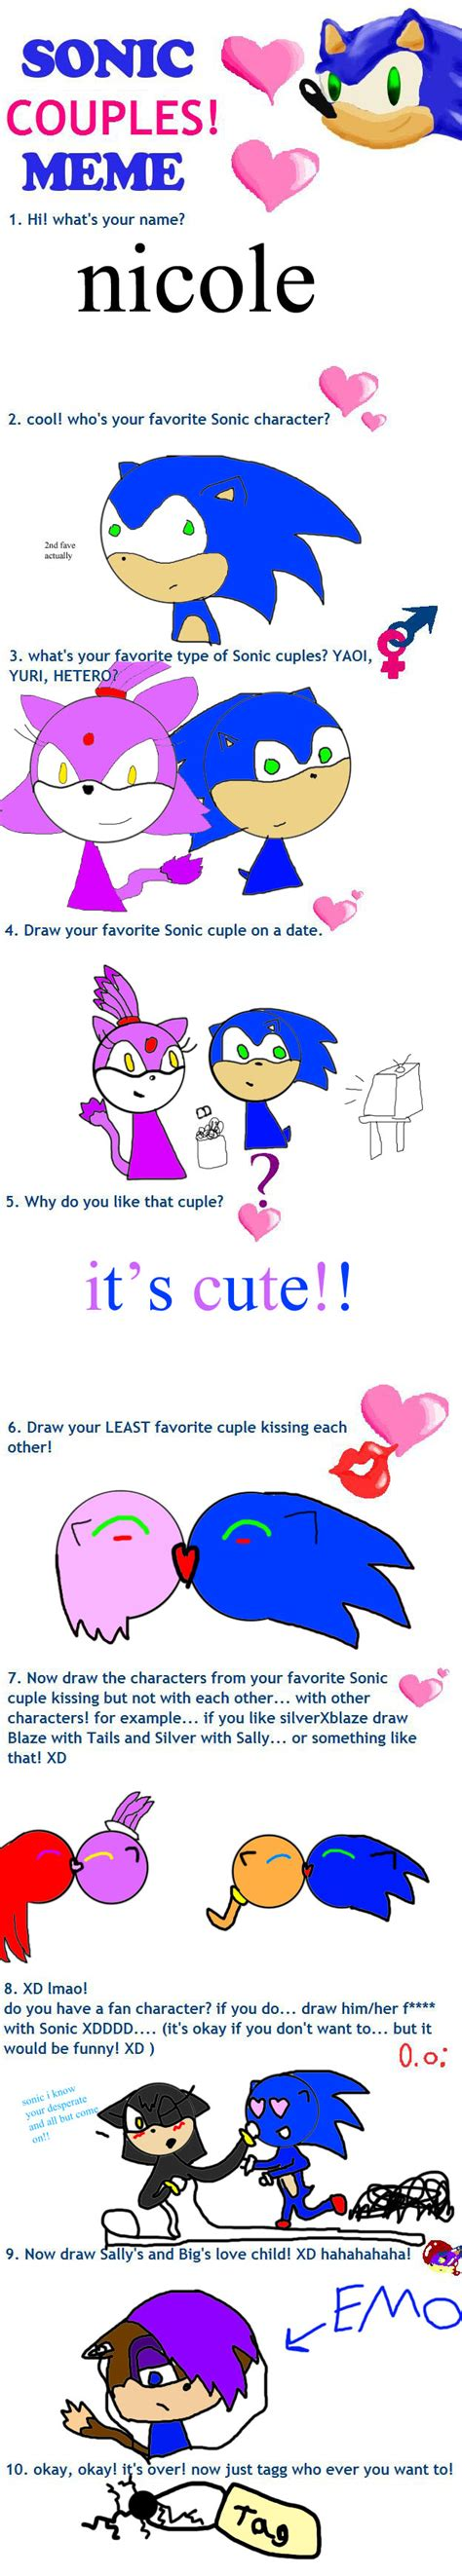 Sonic Couples Meme - sonic couples meme by bunnyinthebox on deviantart